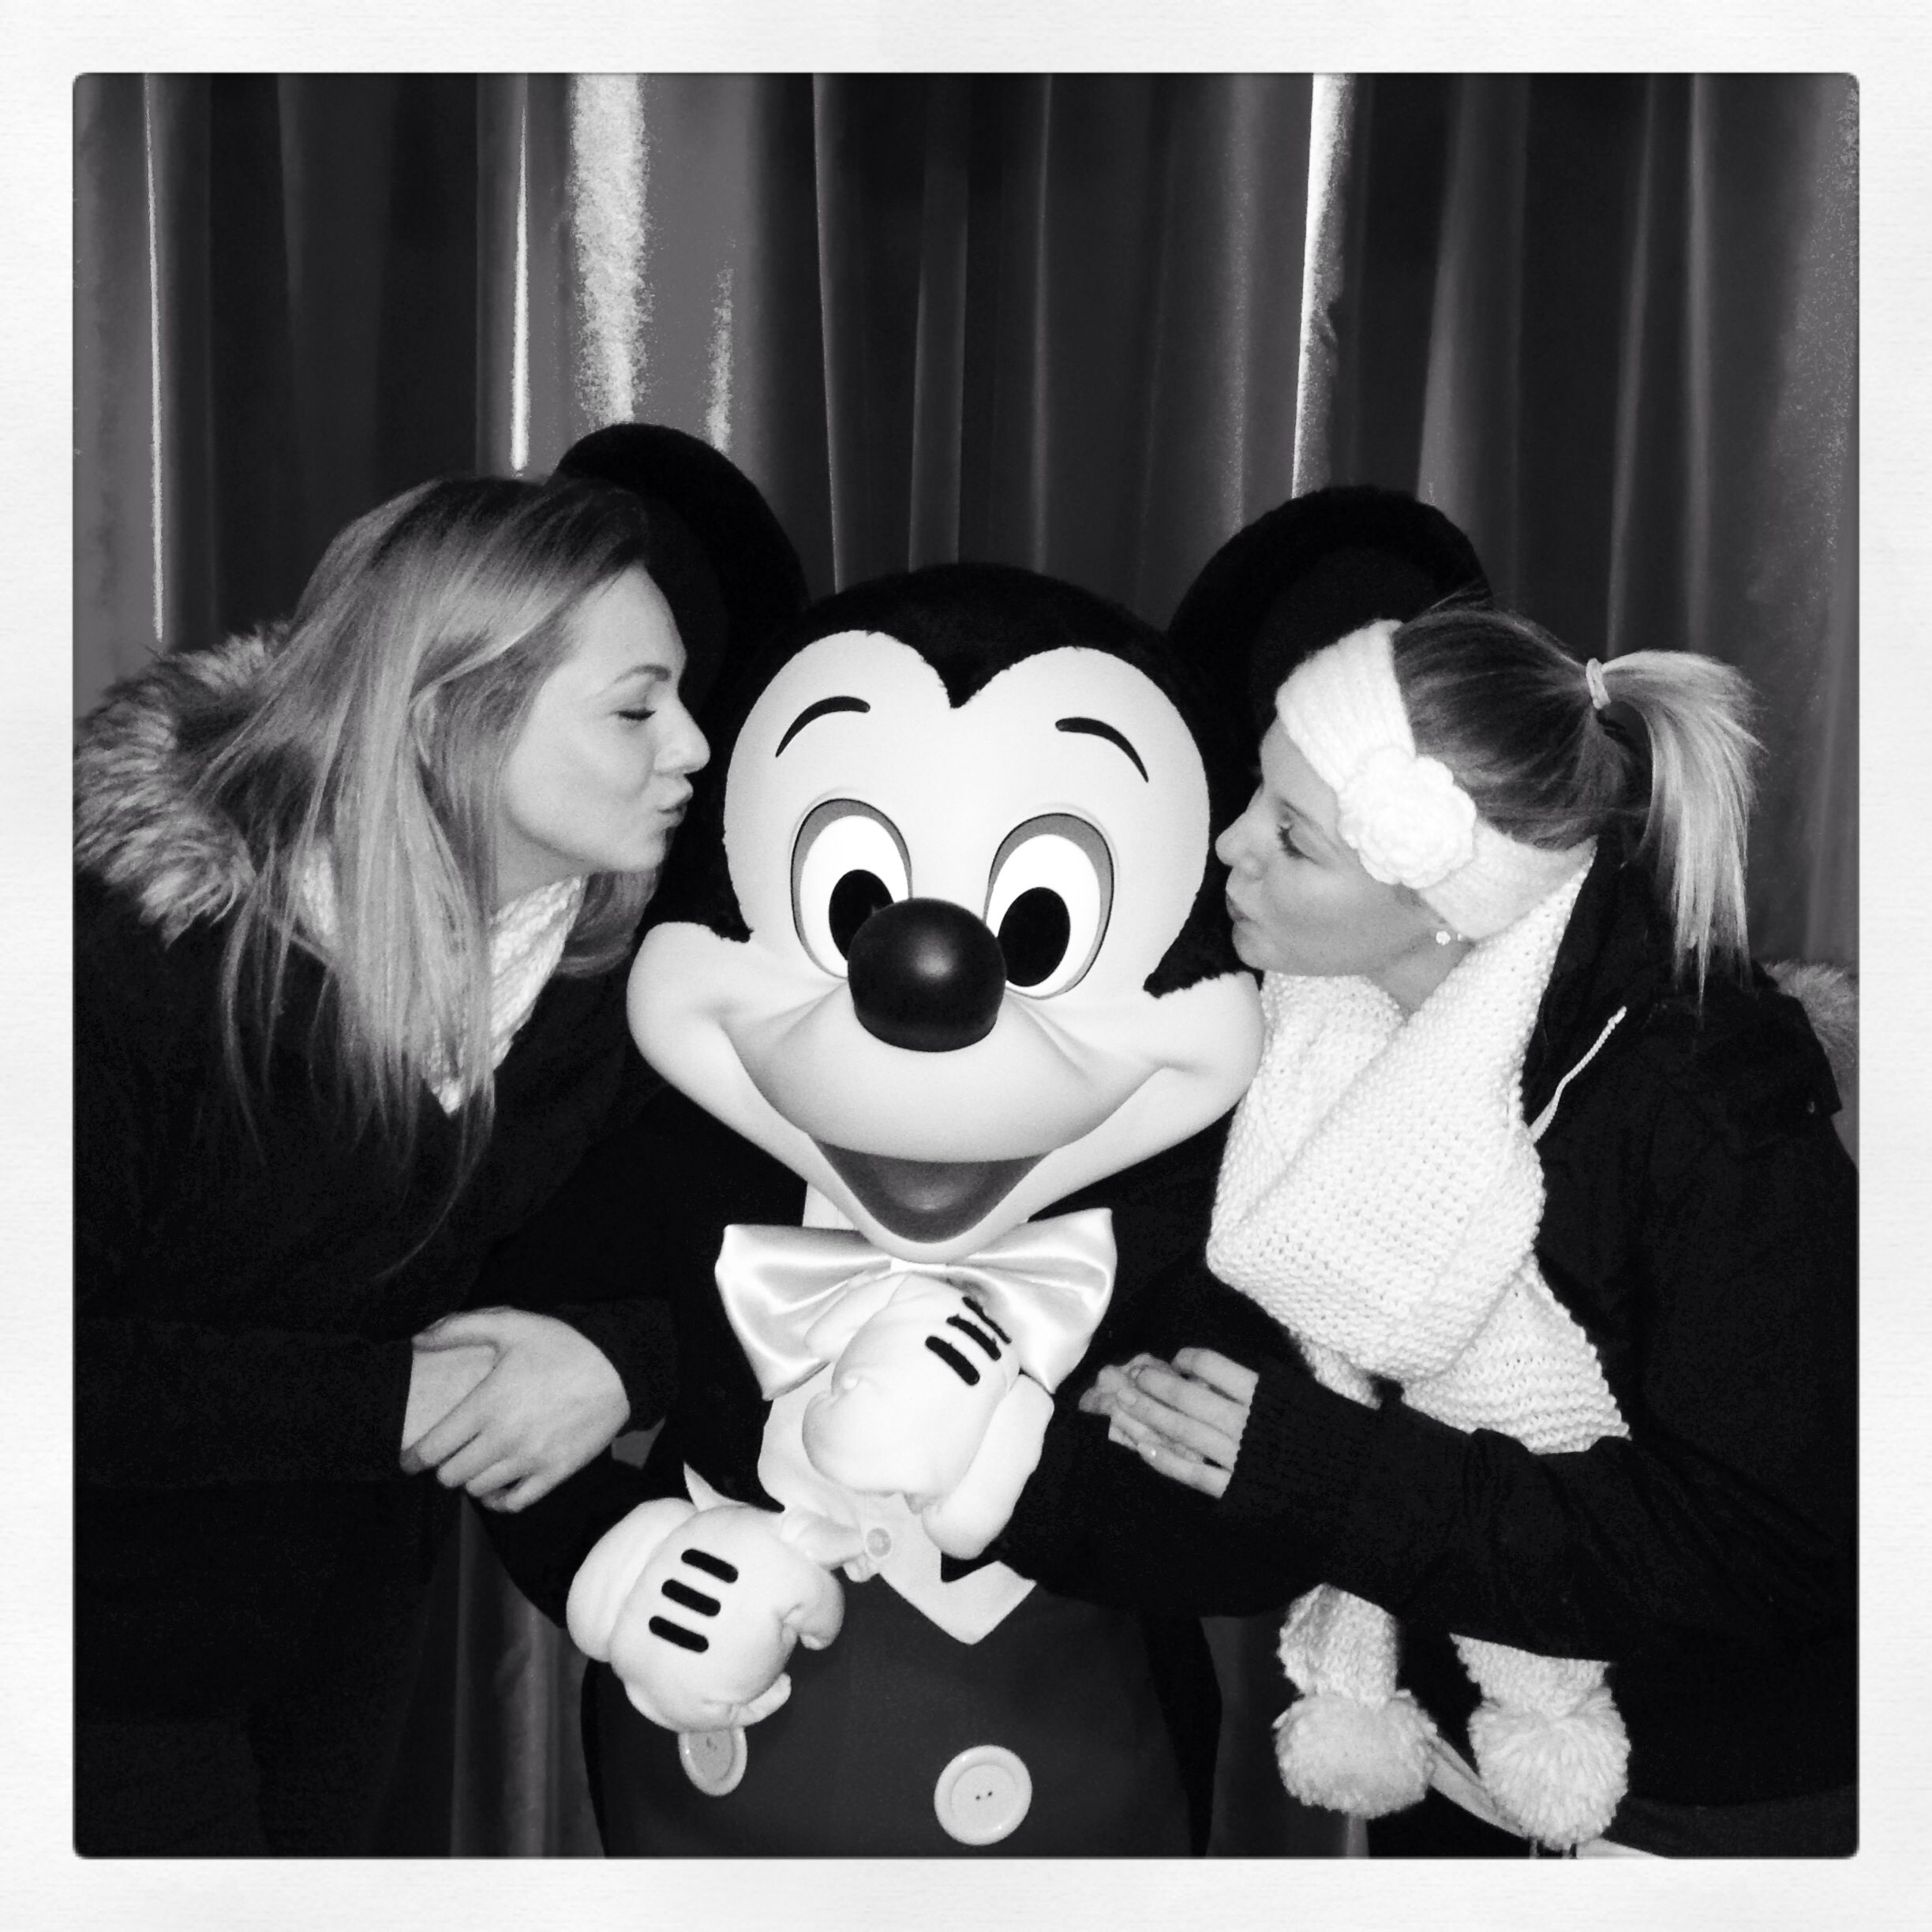 Meeting Mickey Mouse!